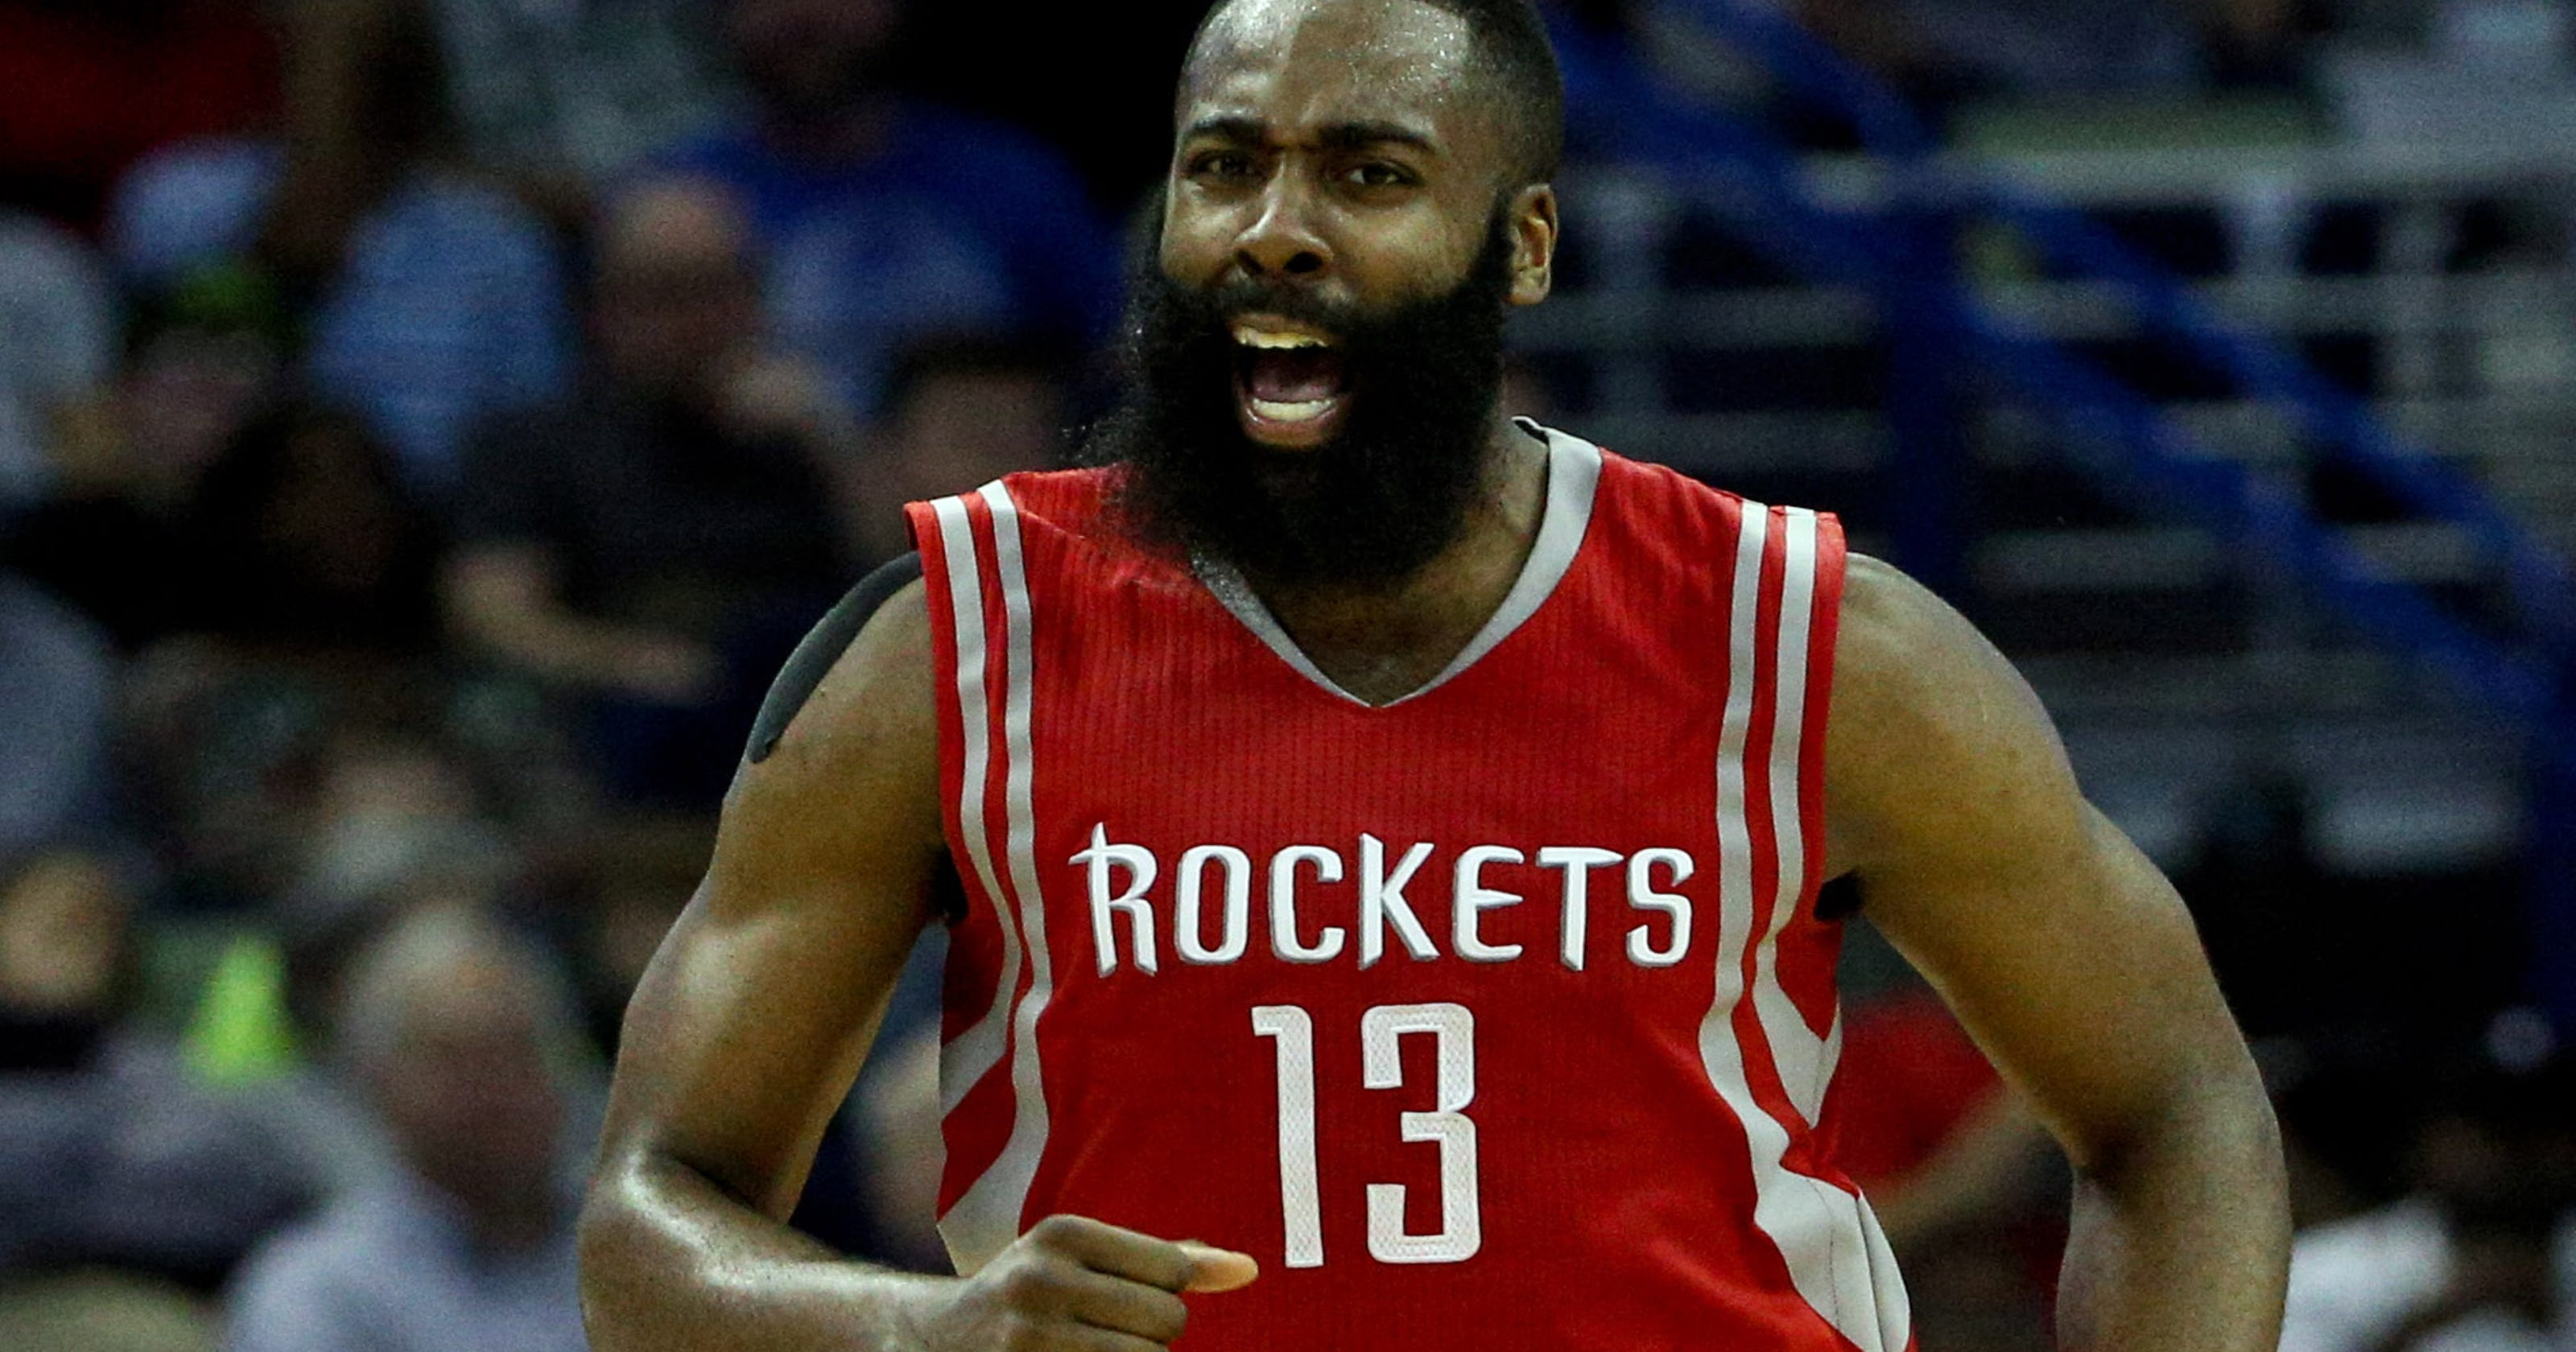 James Harden agrees to $200 million shoe contract with Adidas